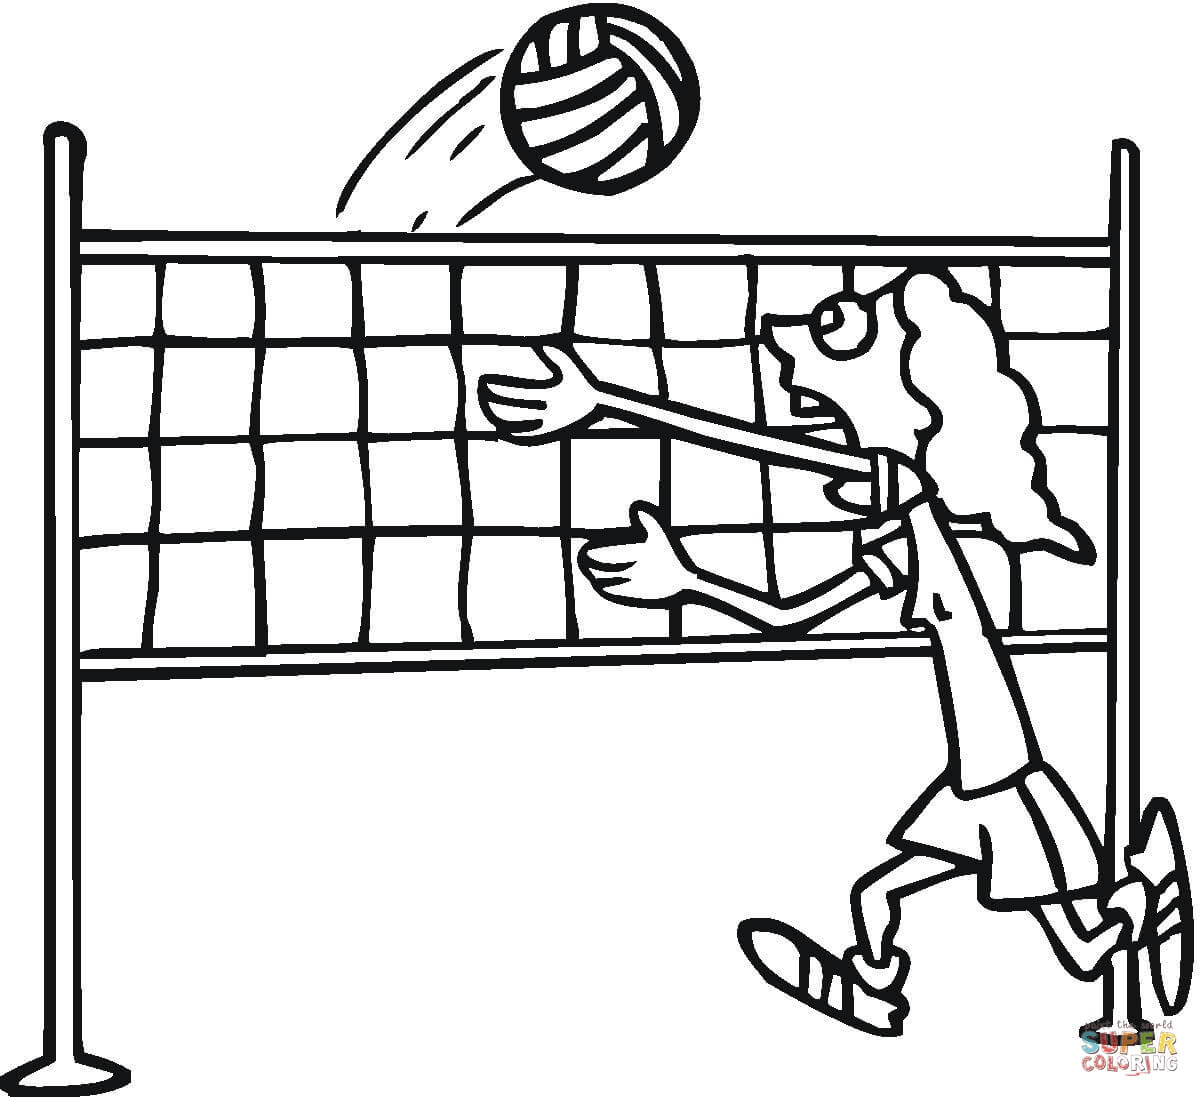 Volleyball Coloring Page Free Printable Coloring Pages